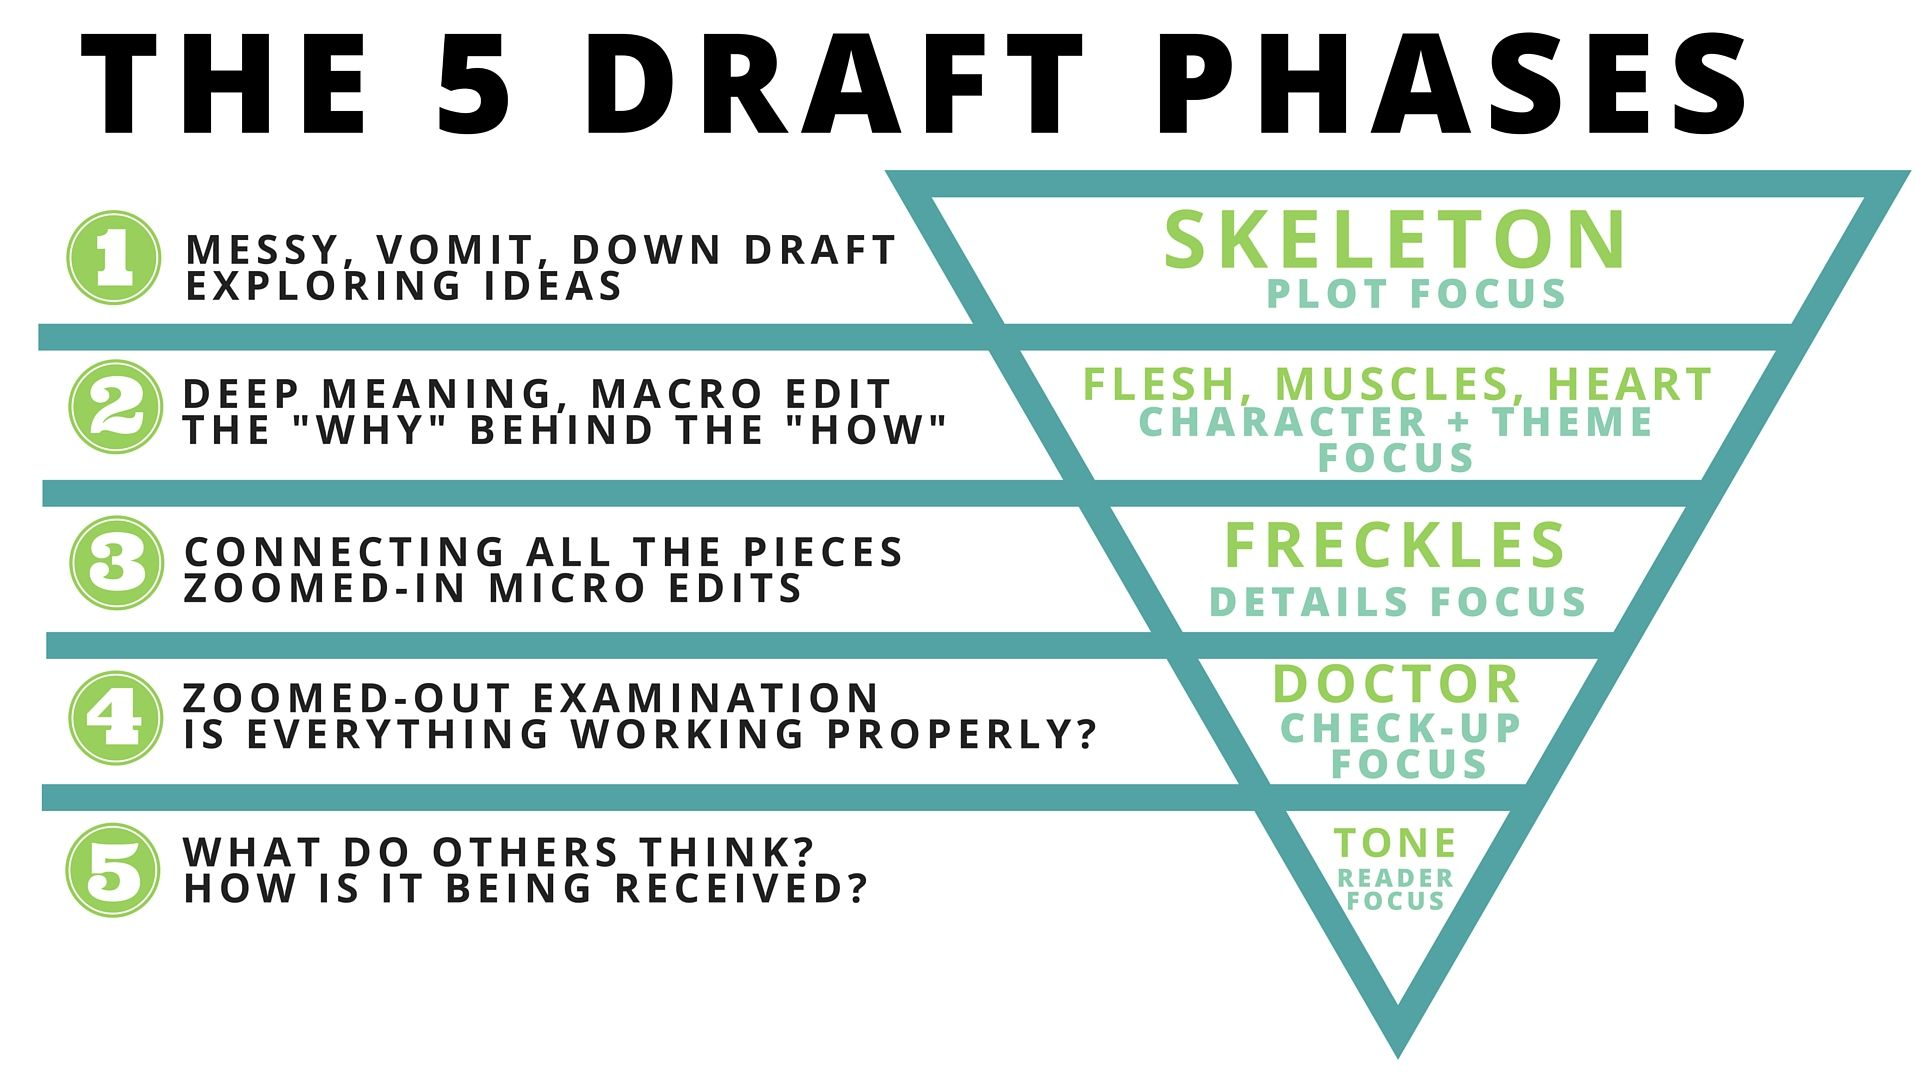 How To Write Revise Your Story In 5 Draft Phases